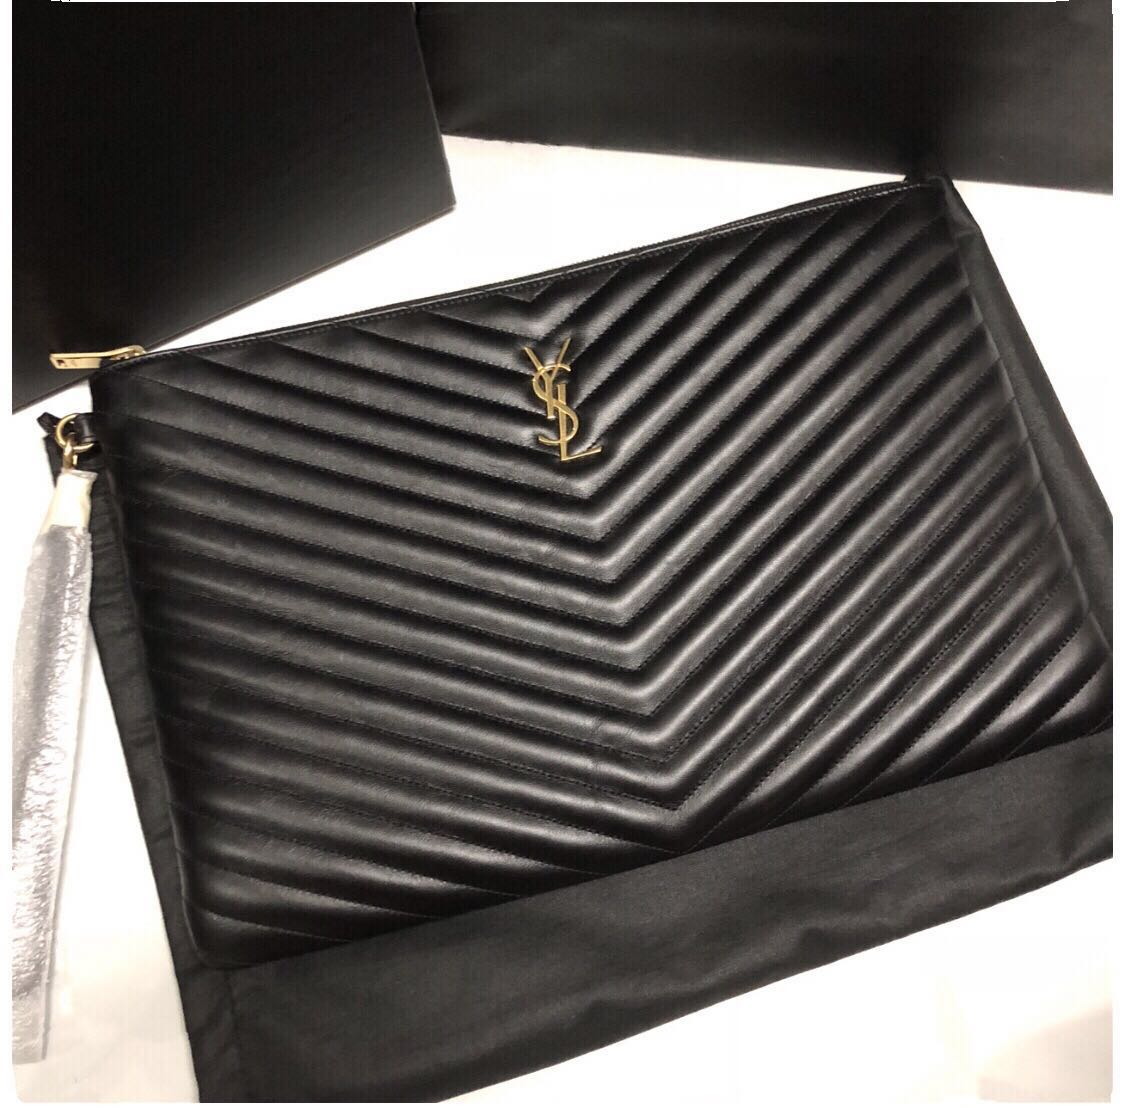 9ddeb64c655 💯Brand New YSL Large O Case Pouch / Clutch, Luxury, Bags & Wallets on  Carousell